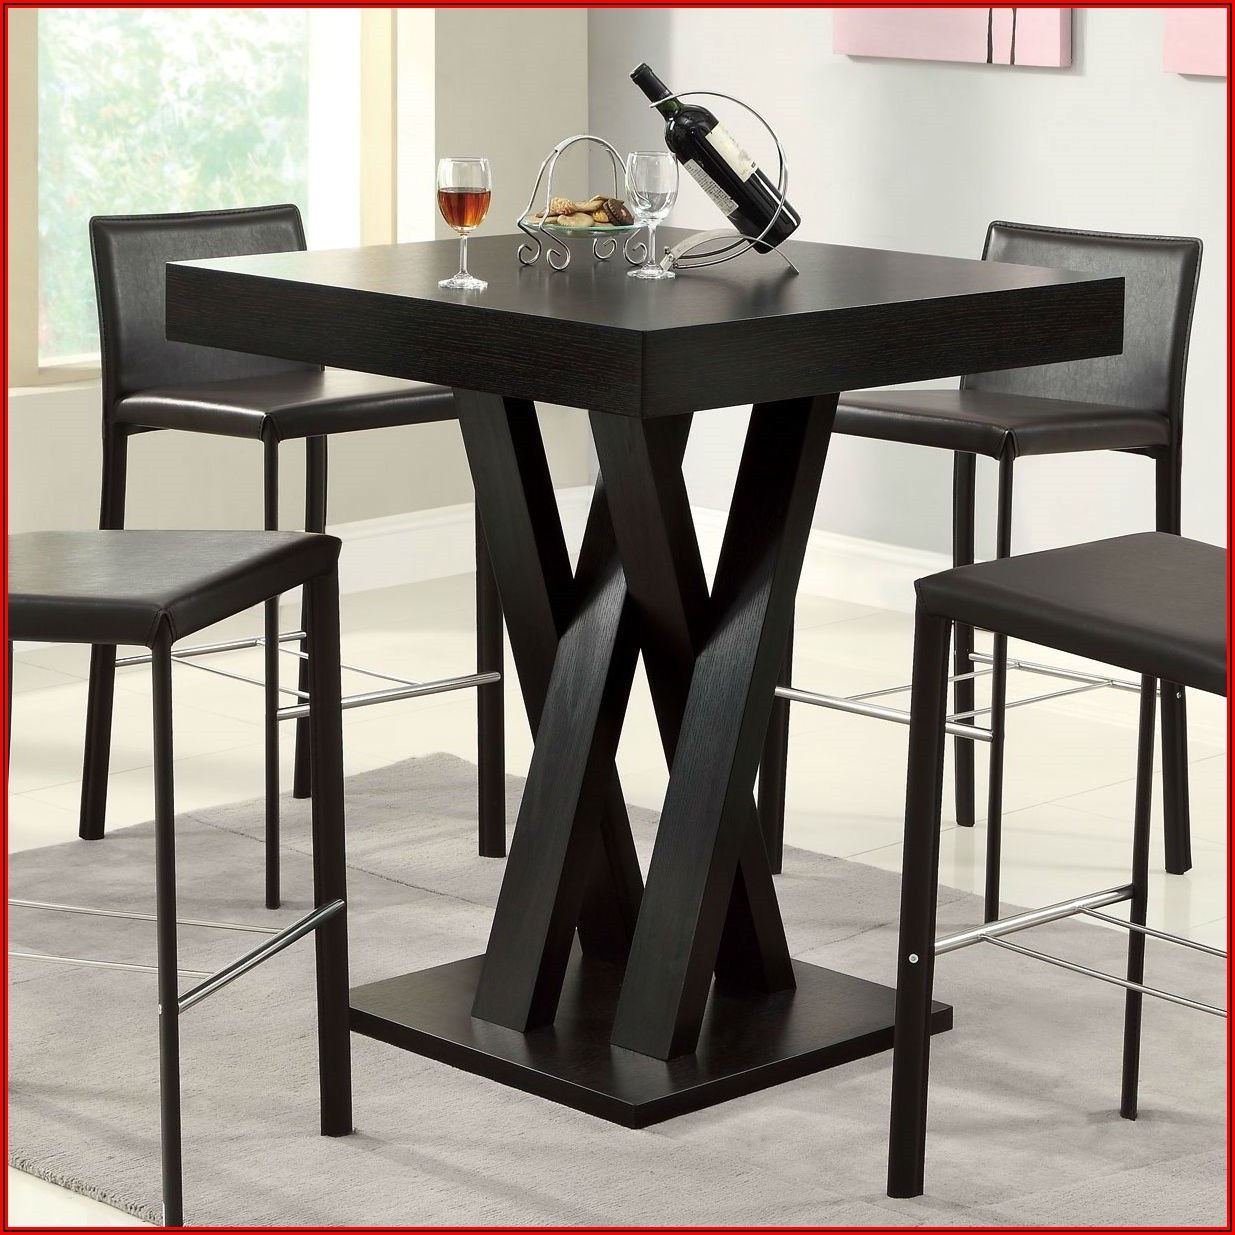 42 Inch High Patio Table